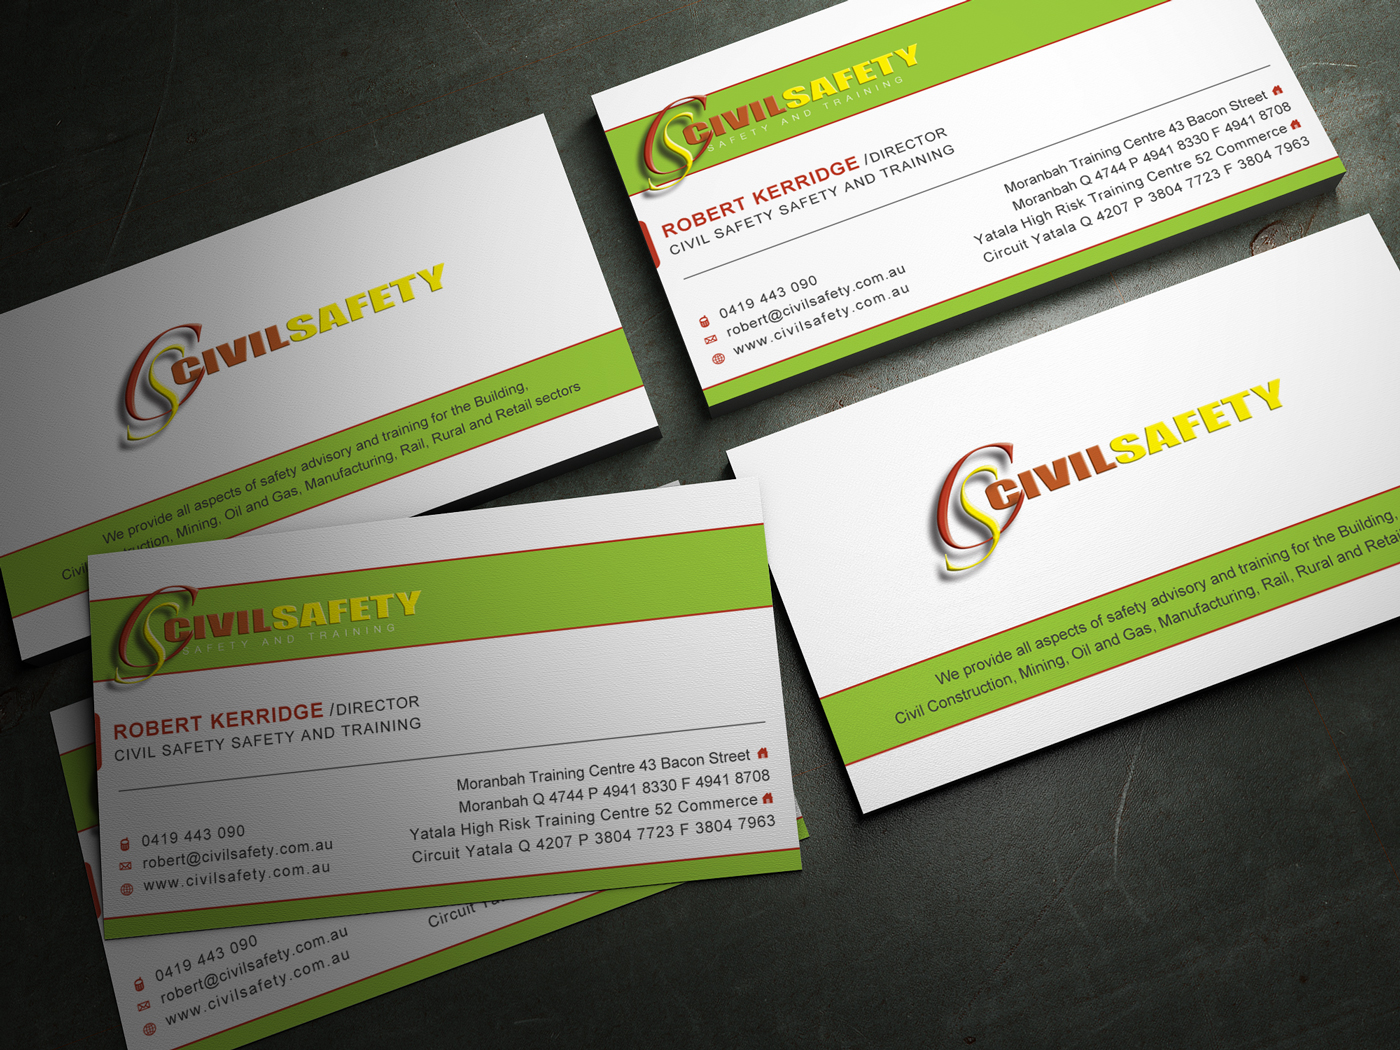 Professional bold training business card design for civil safety business card design by milimi for civil safety pty ltd design 2779635 reheart Images